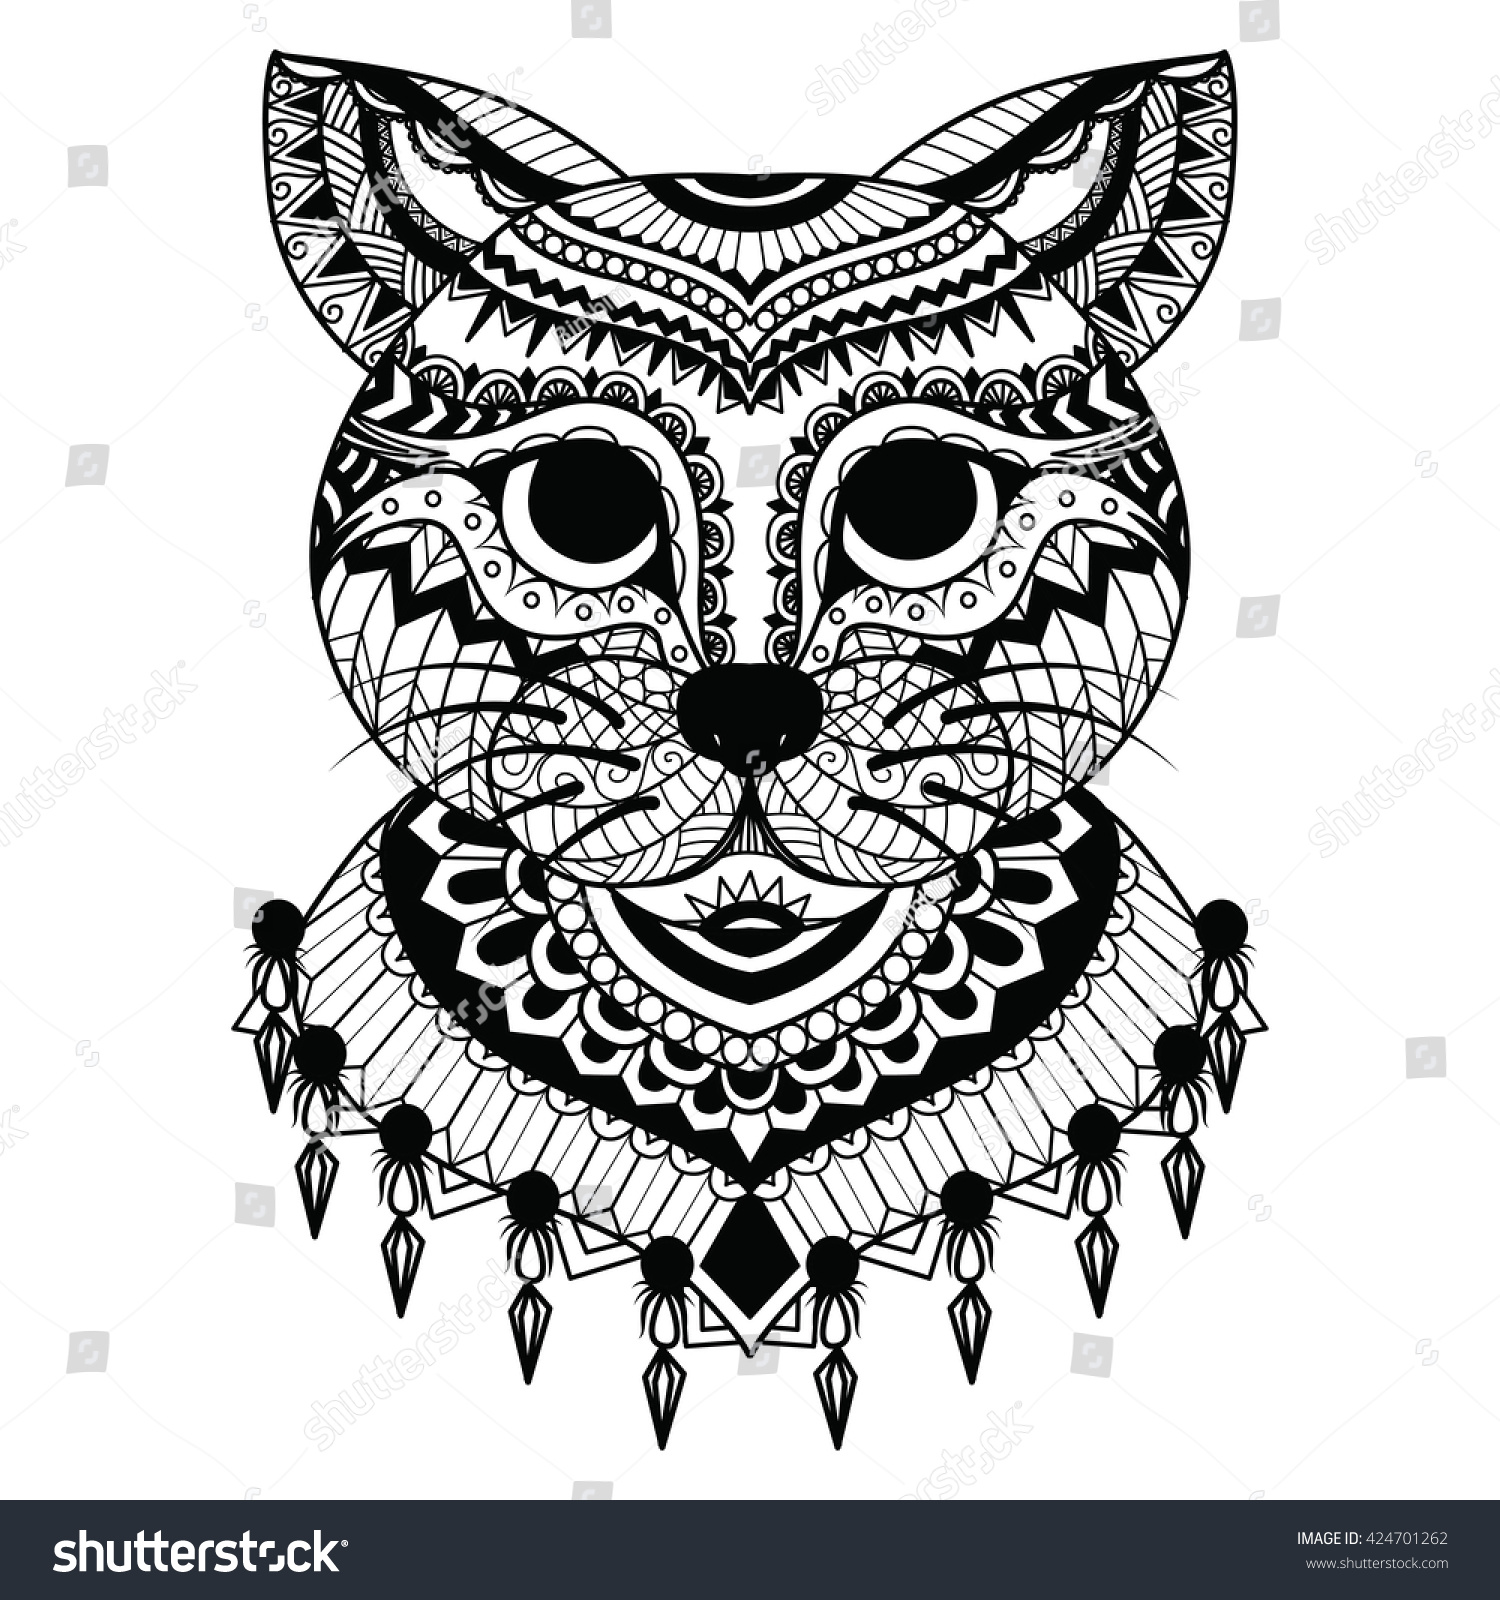 The coloring book clean - Clean Lines Doodle Art Of Cute Cat For Coloring Book For Adult Cards T